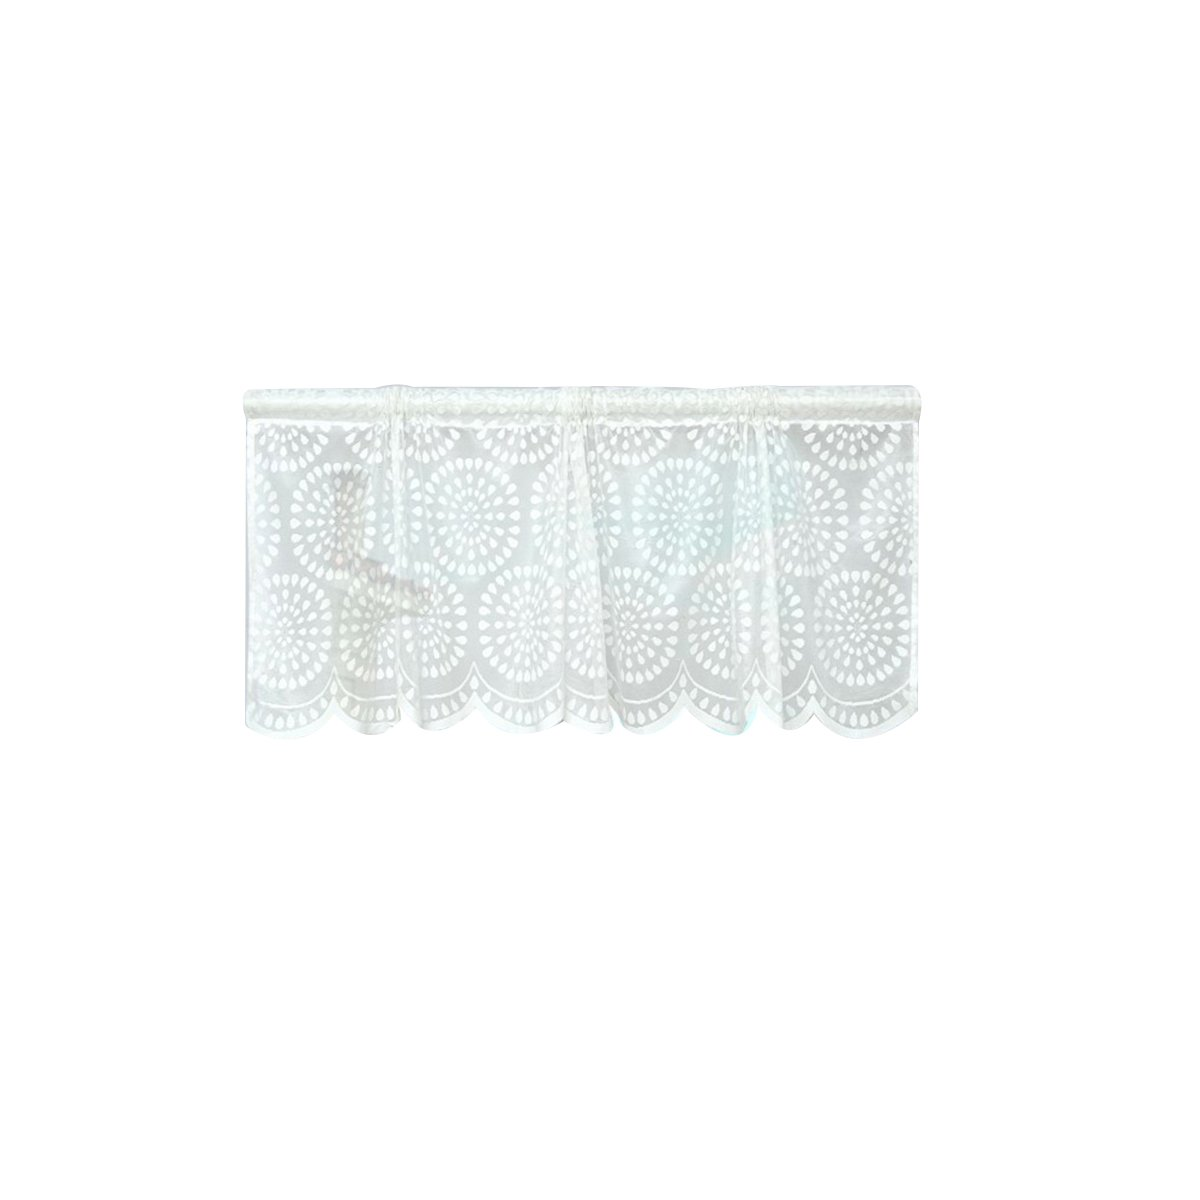 VORCOOL Window Short Curtains Decorative Sun Proof Shade Screen Purdah Curtain Valance (White Dot)